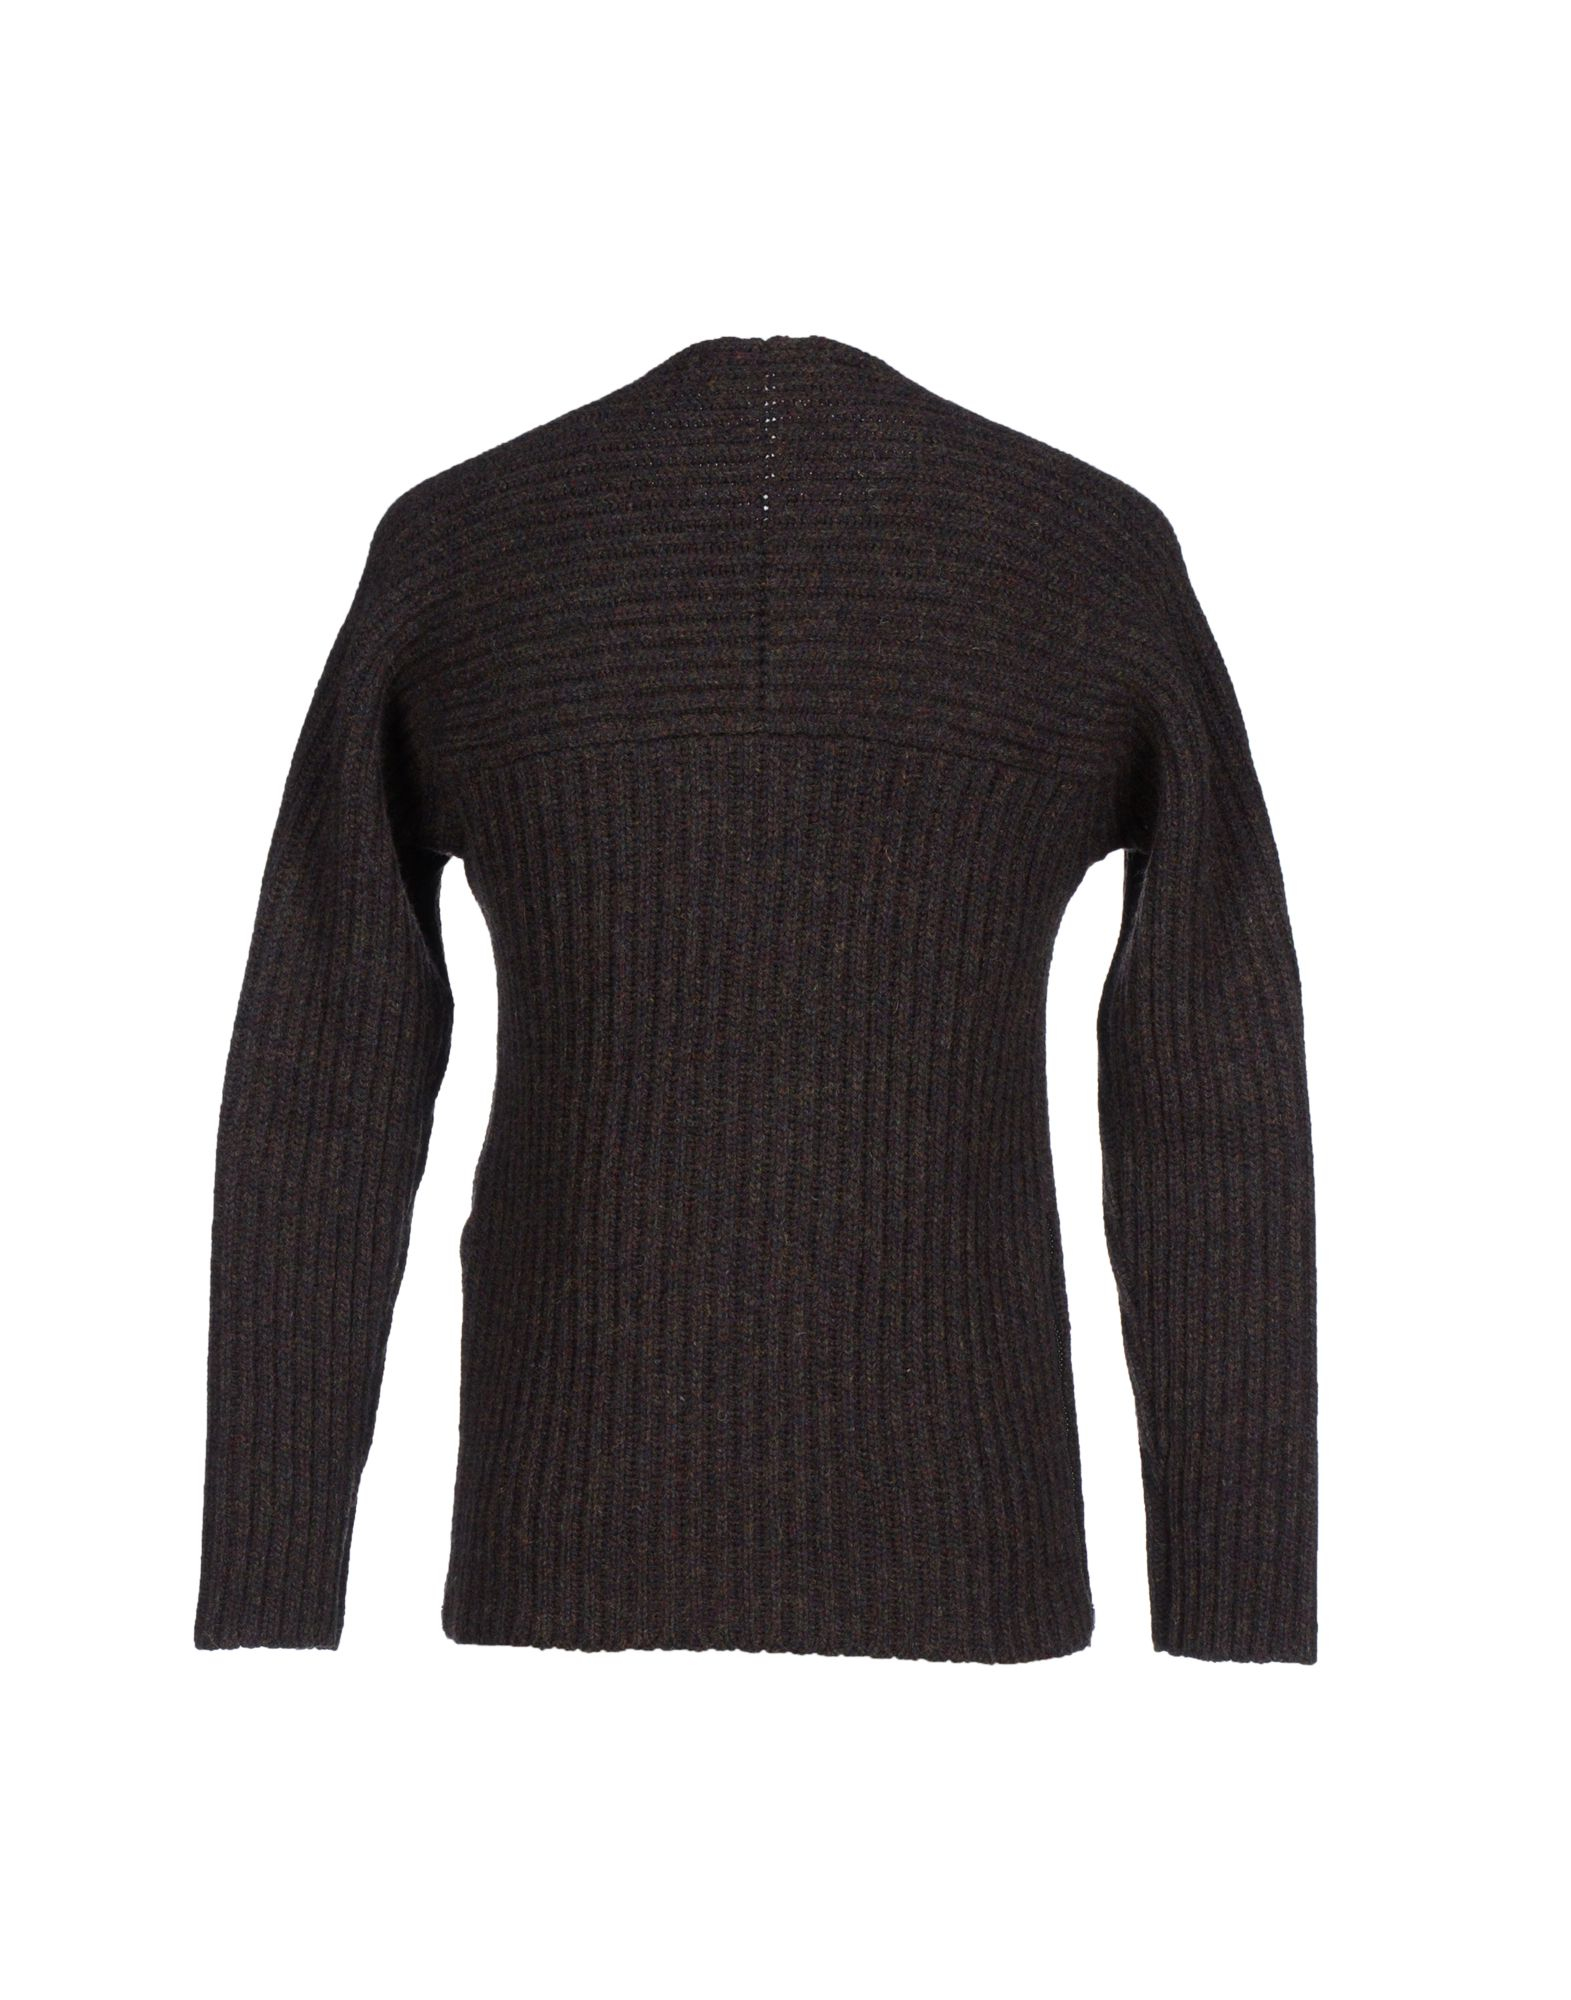 Grey Daniele Alessandrini Sweater Dark Brown 5 on oscar de la renta sweater men s brown